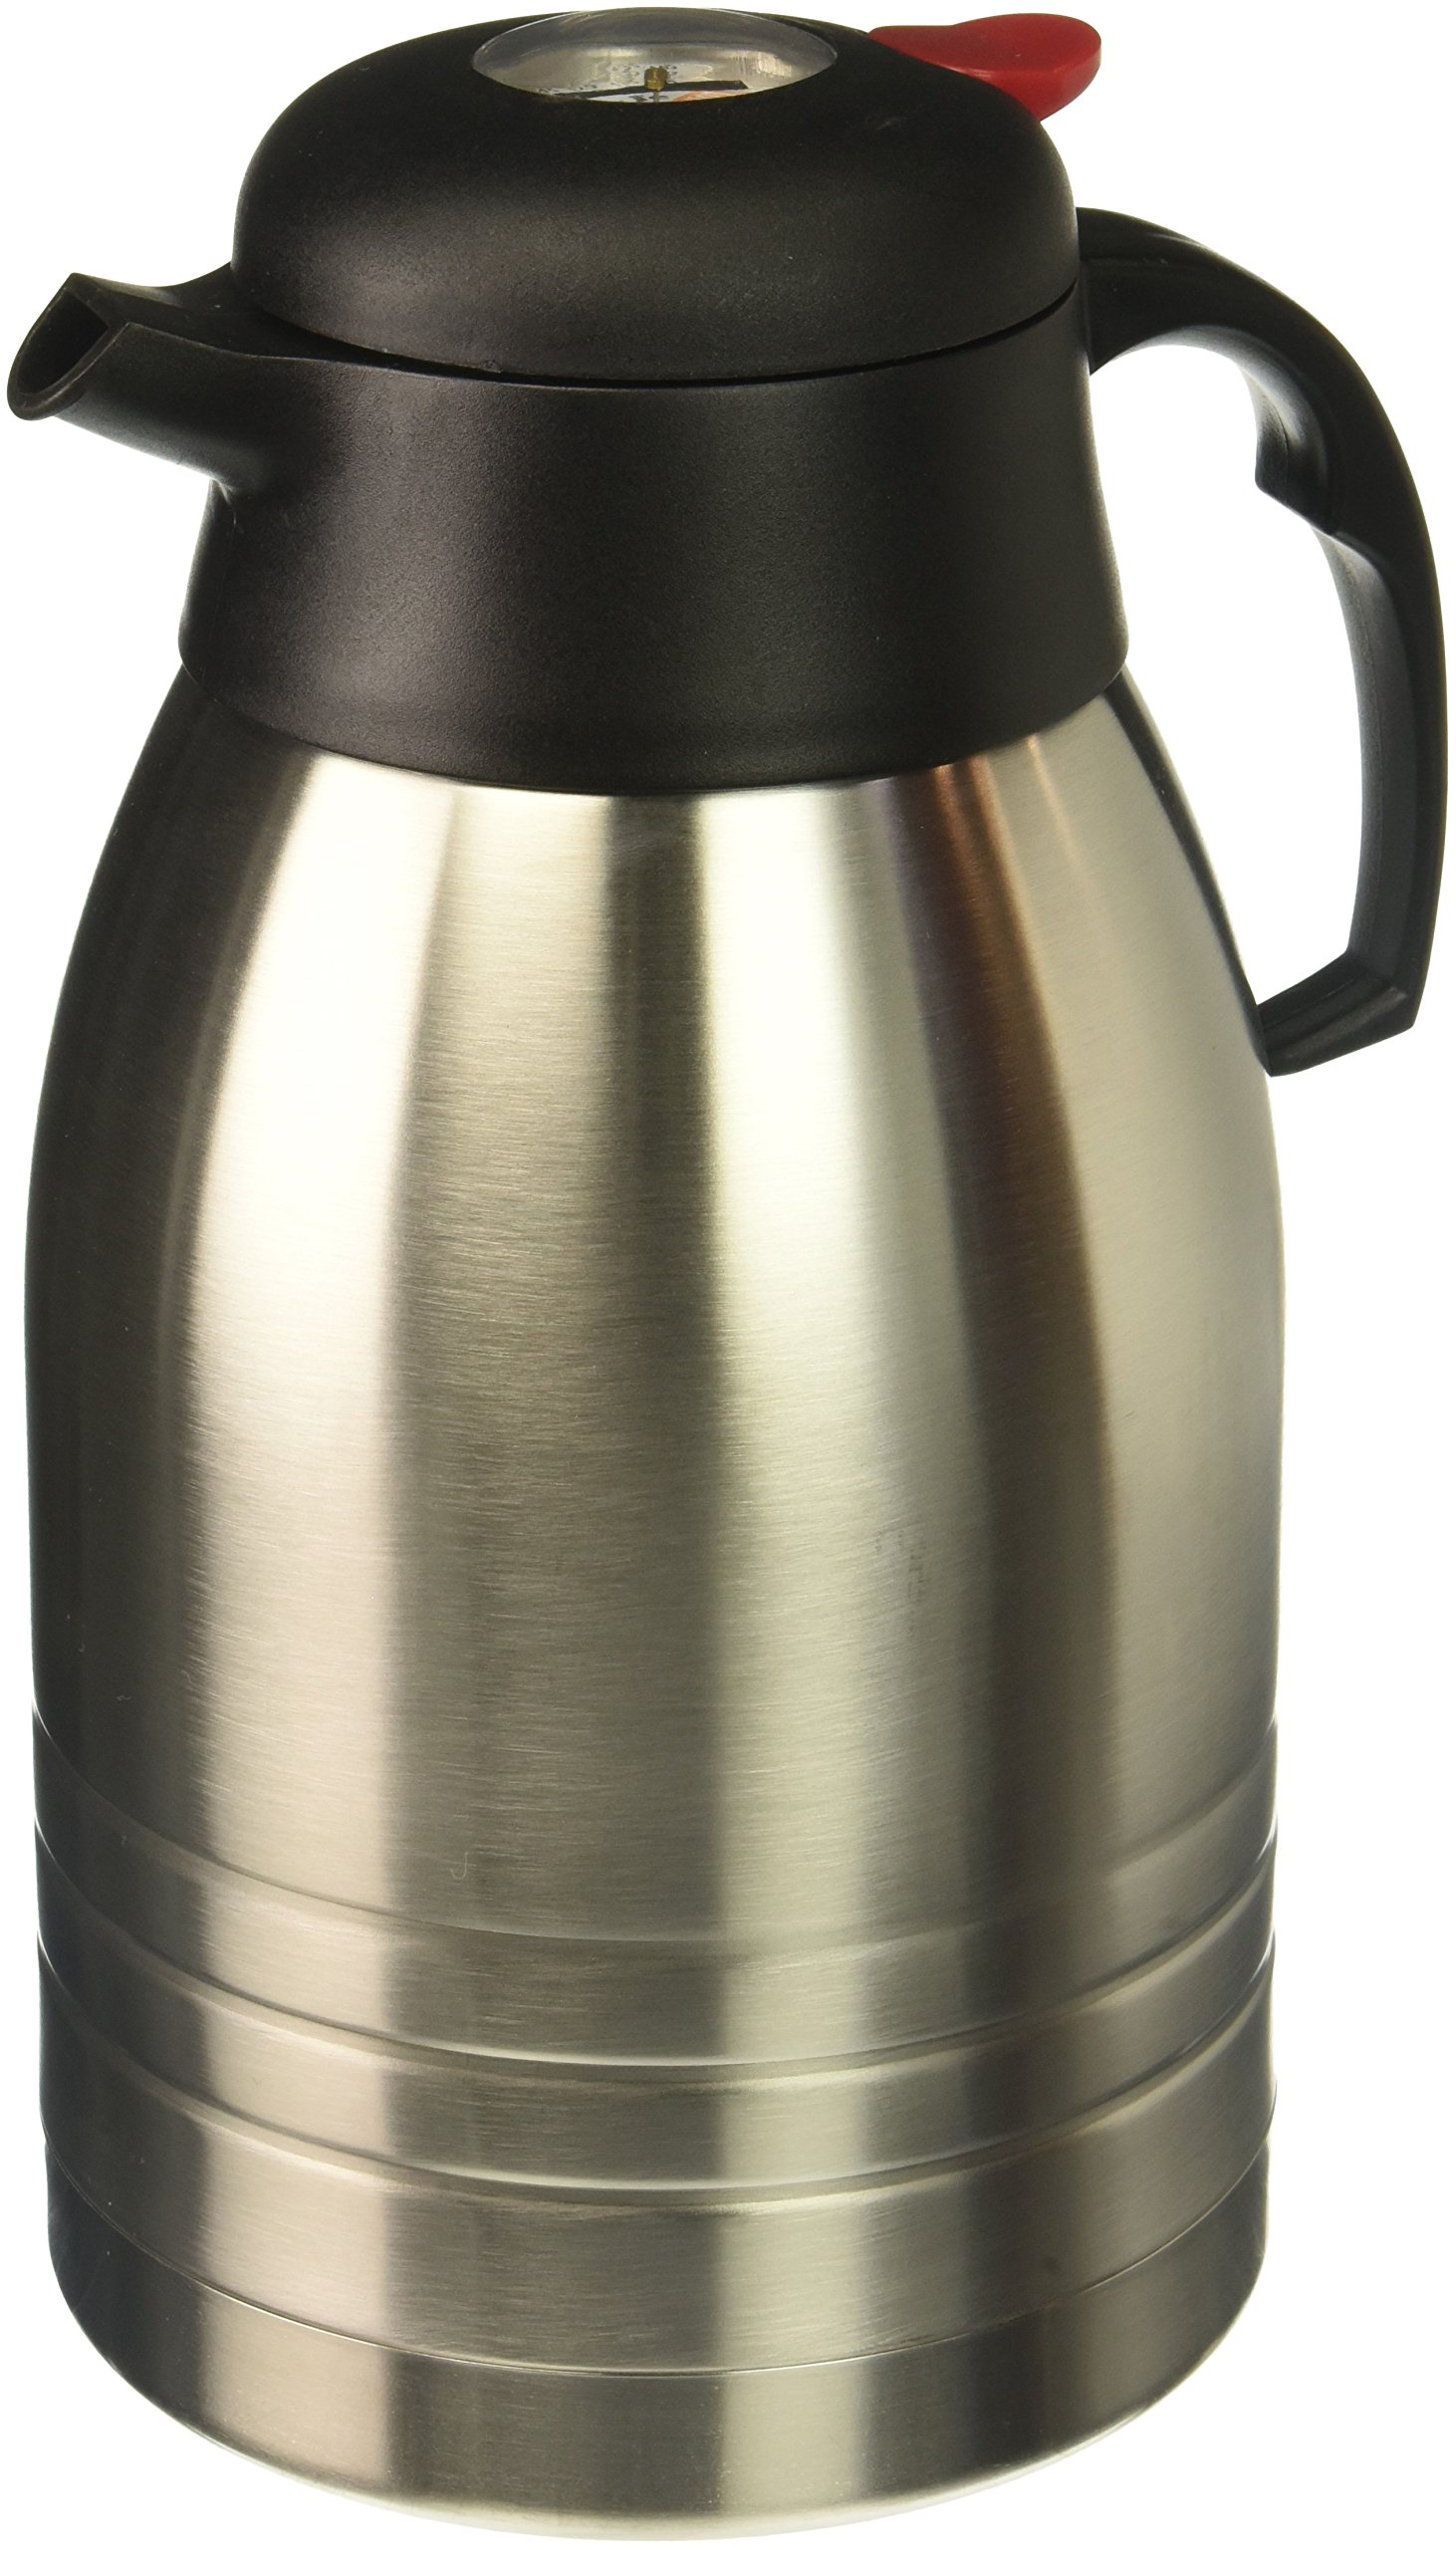 Primula 2-Liter Temp Assure Coffee Carafe, Stainless Steel/Black